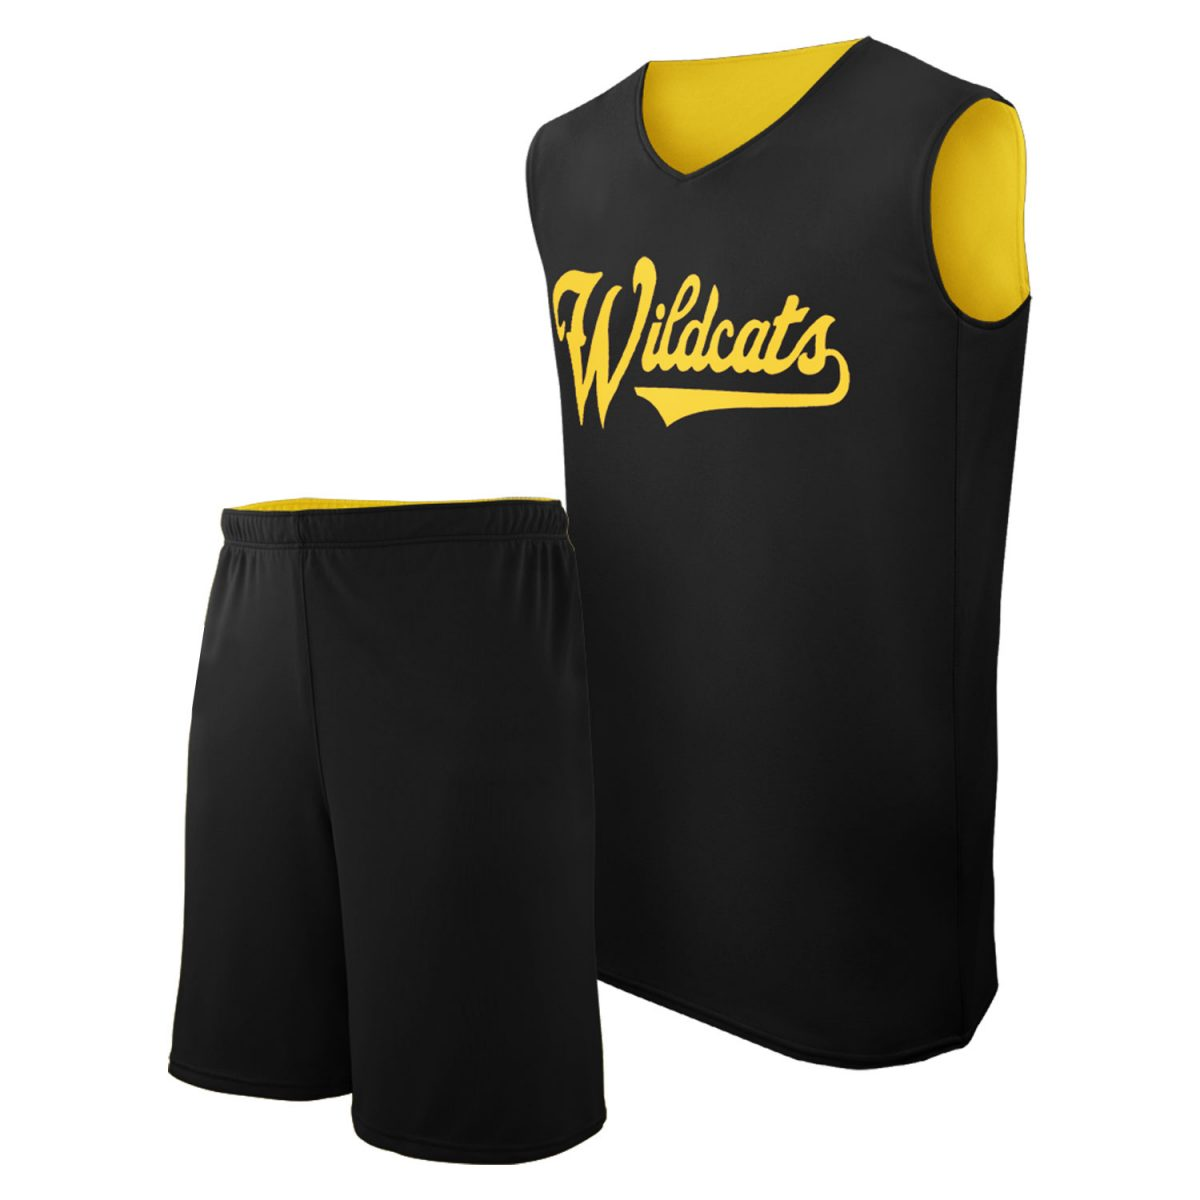 Boys Basketball Uniforms Manufacturers in United-states-of-america